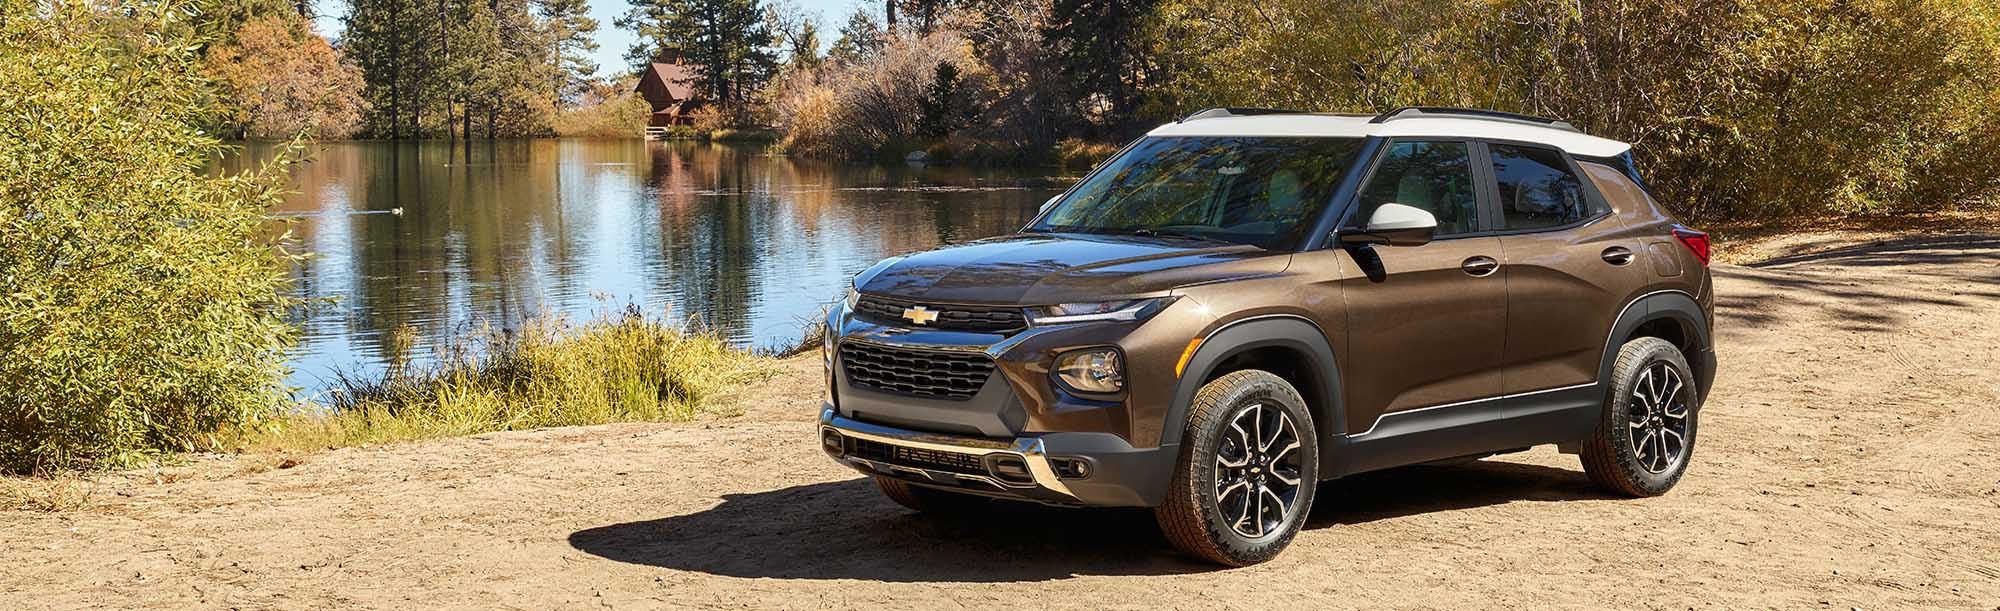 2021 Chevrolet Trailblazer SUV On Road